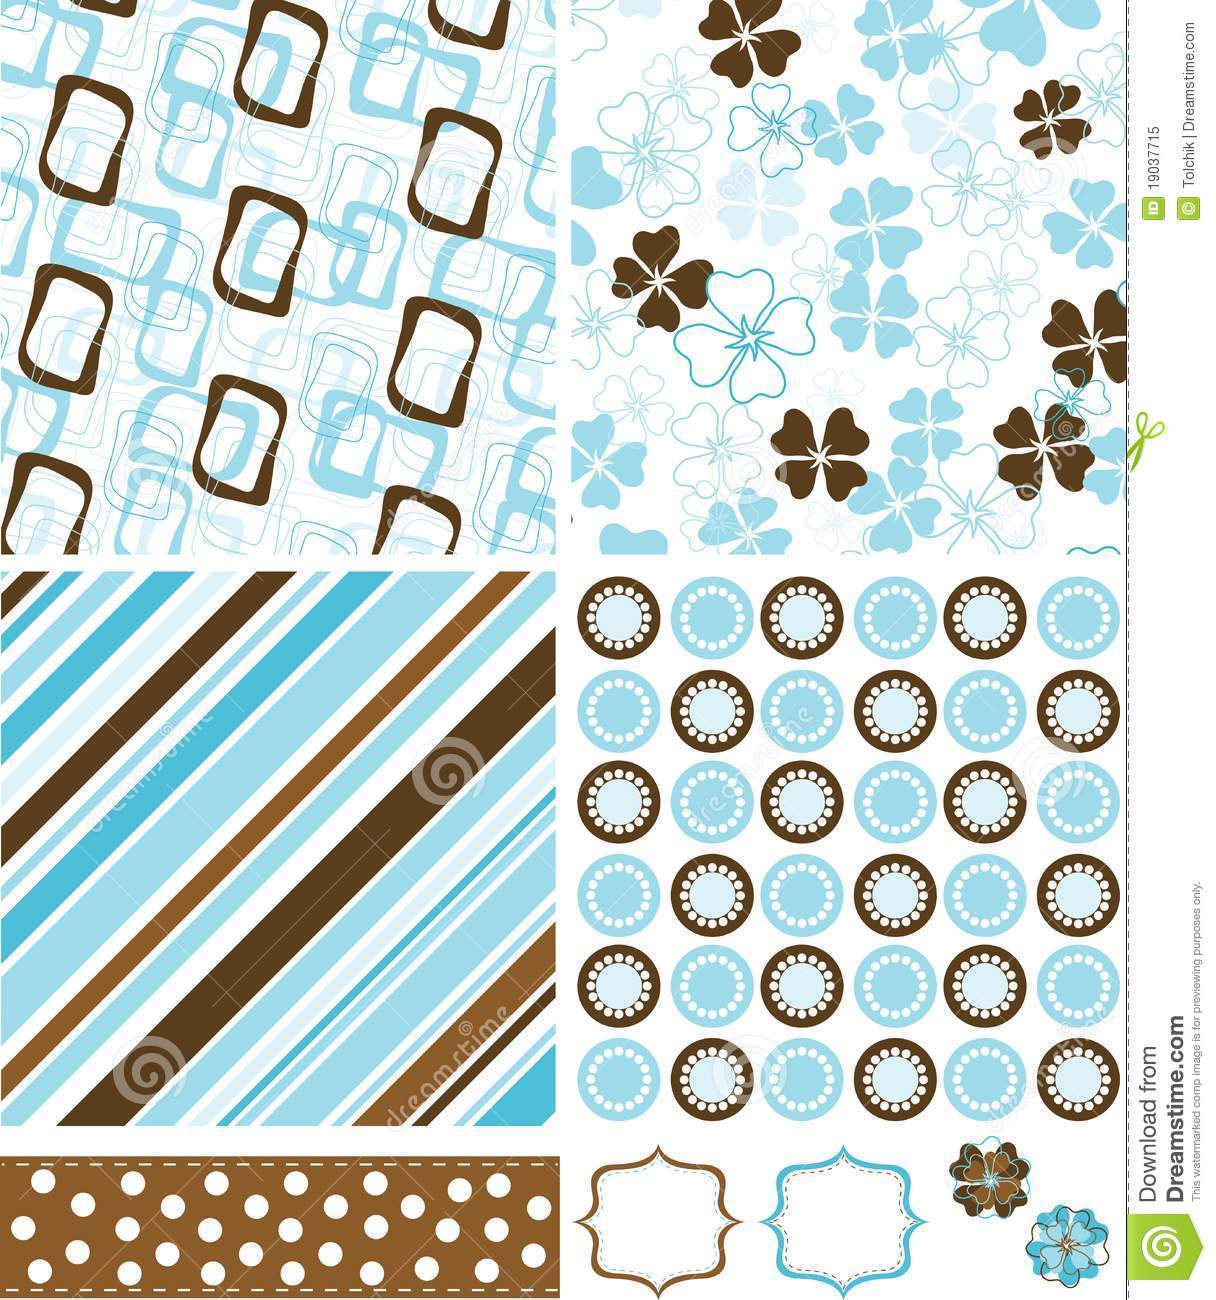 Cute Baby Girl Image Wallpaper Scrapbook Elements And Patterns For Design Stock Vector